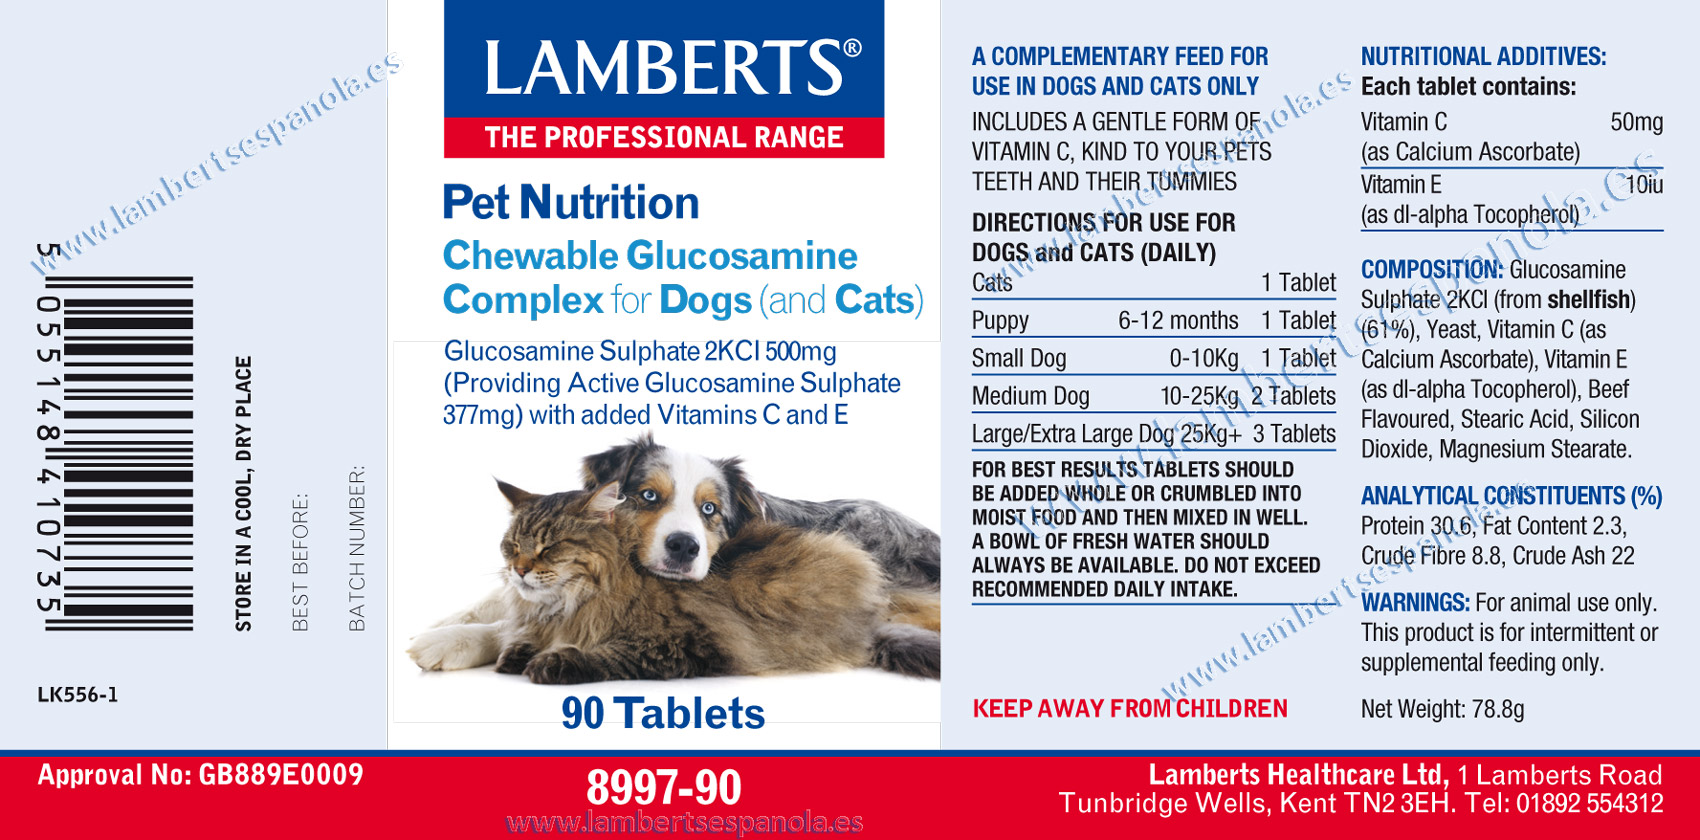 Glucosamine complex for dogs and cats properties